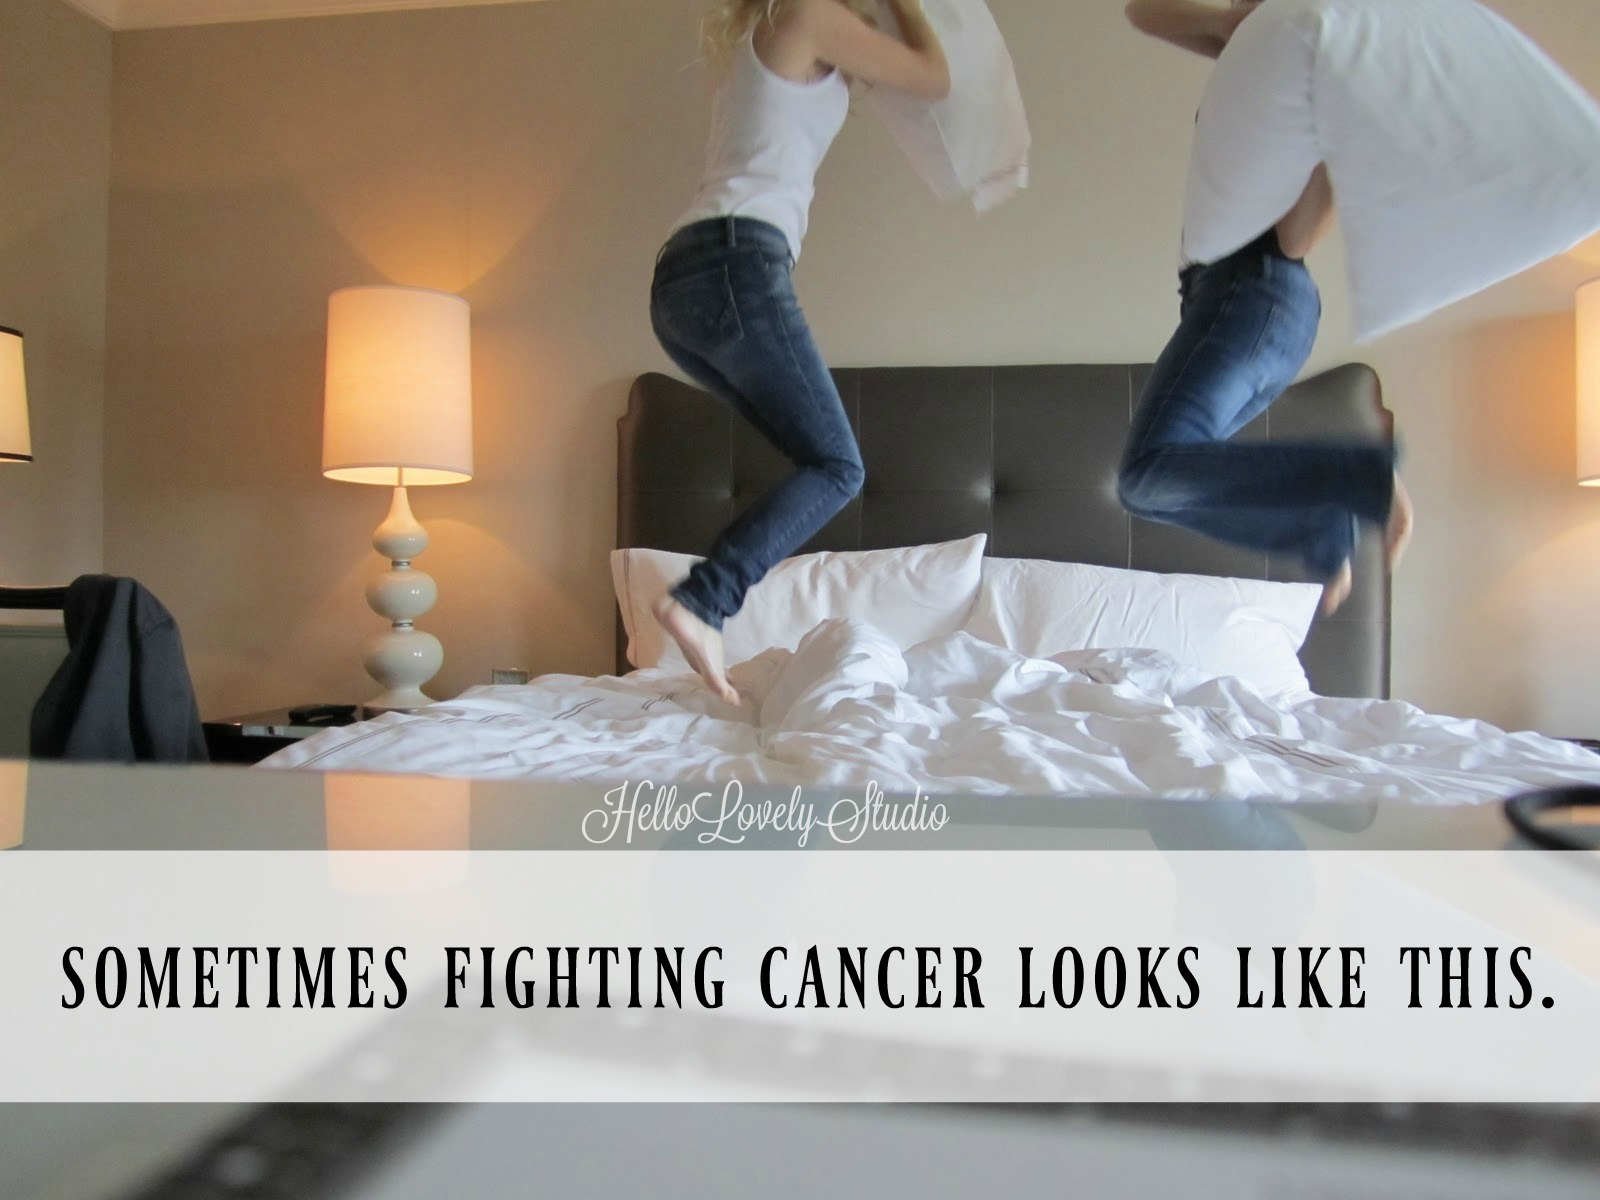 Sometimes fighting cancer looks like this/pillow fight